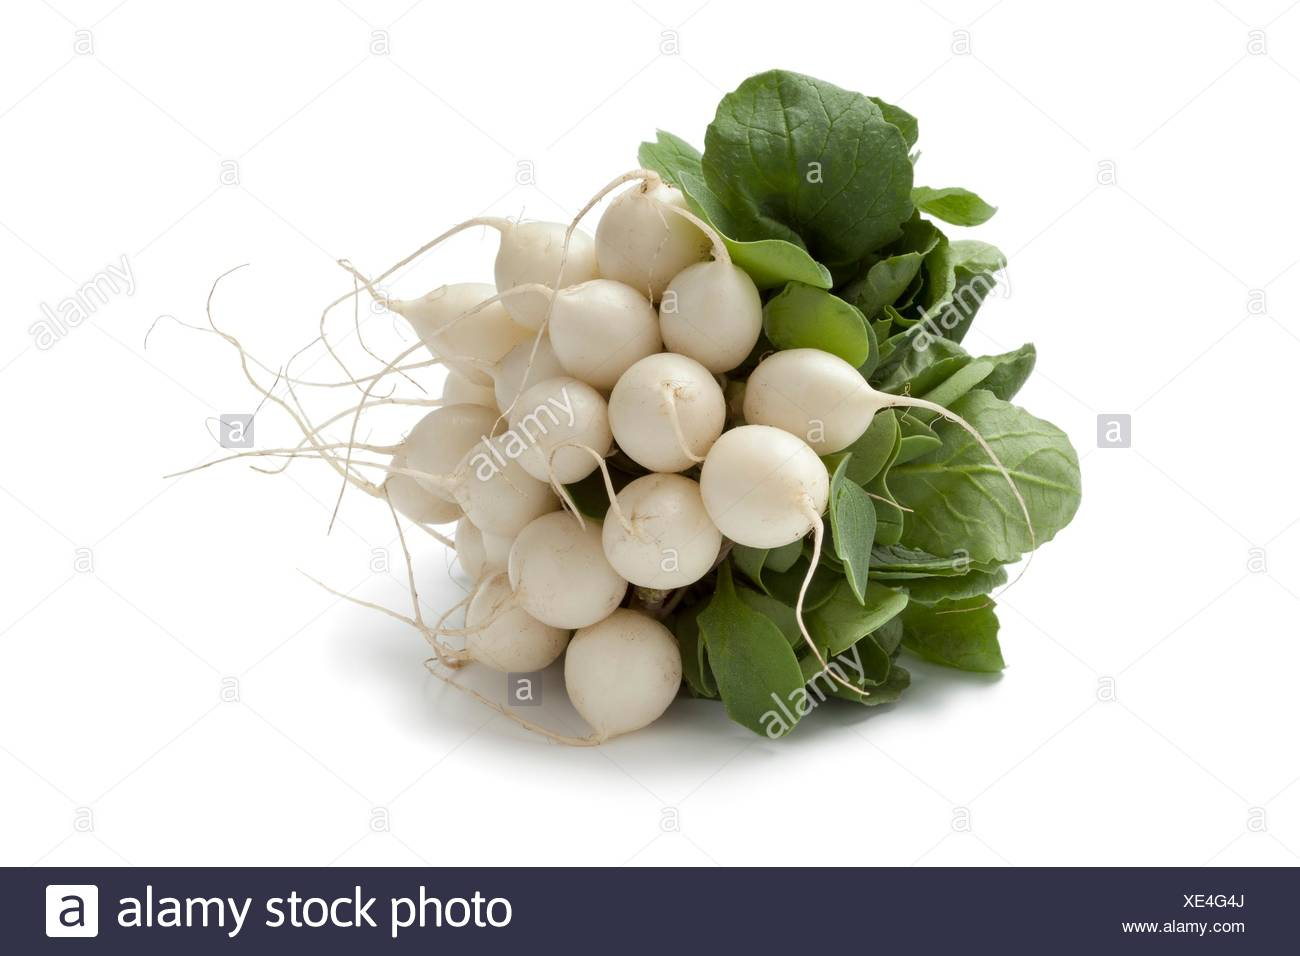 Bunch of fresh white Radish on white backgrpound. - Stock Image